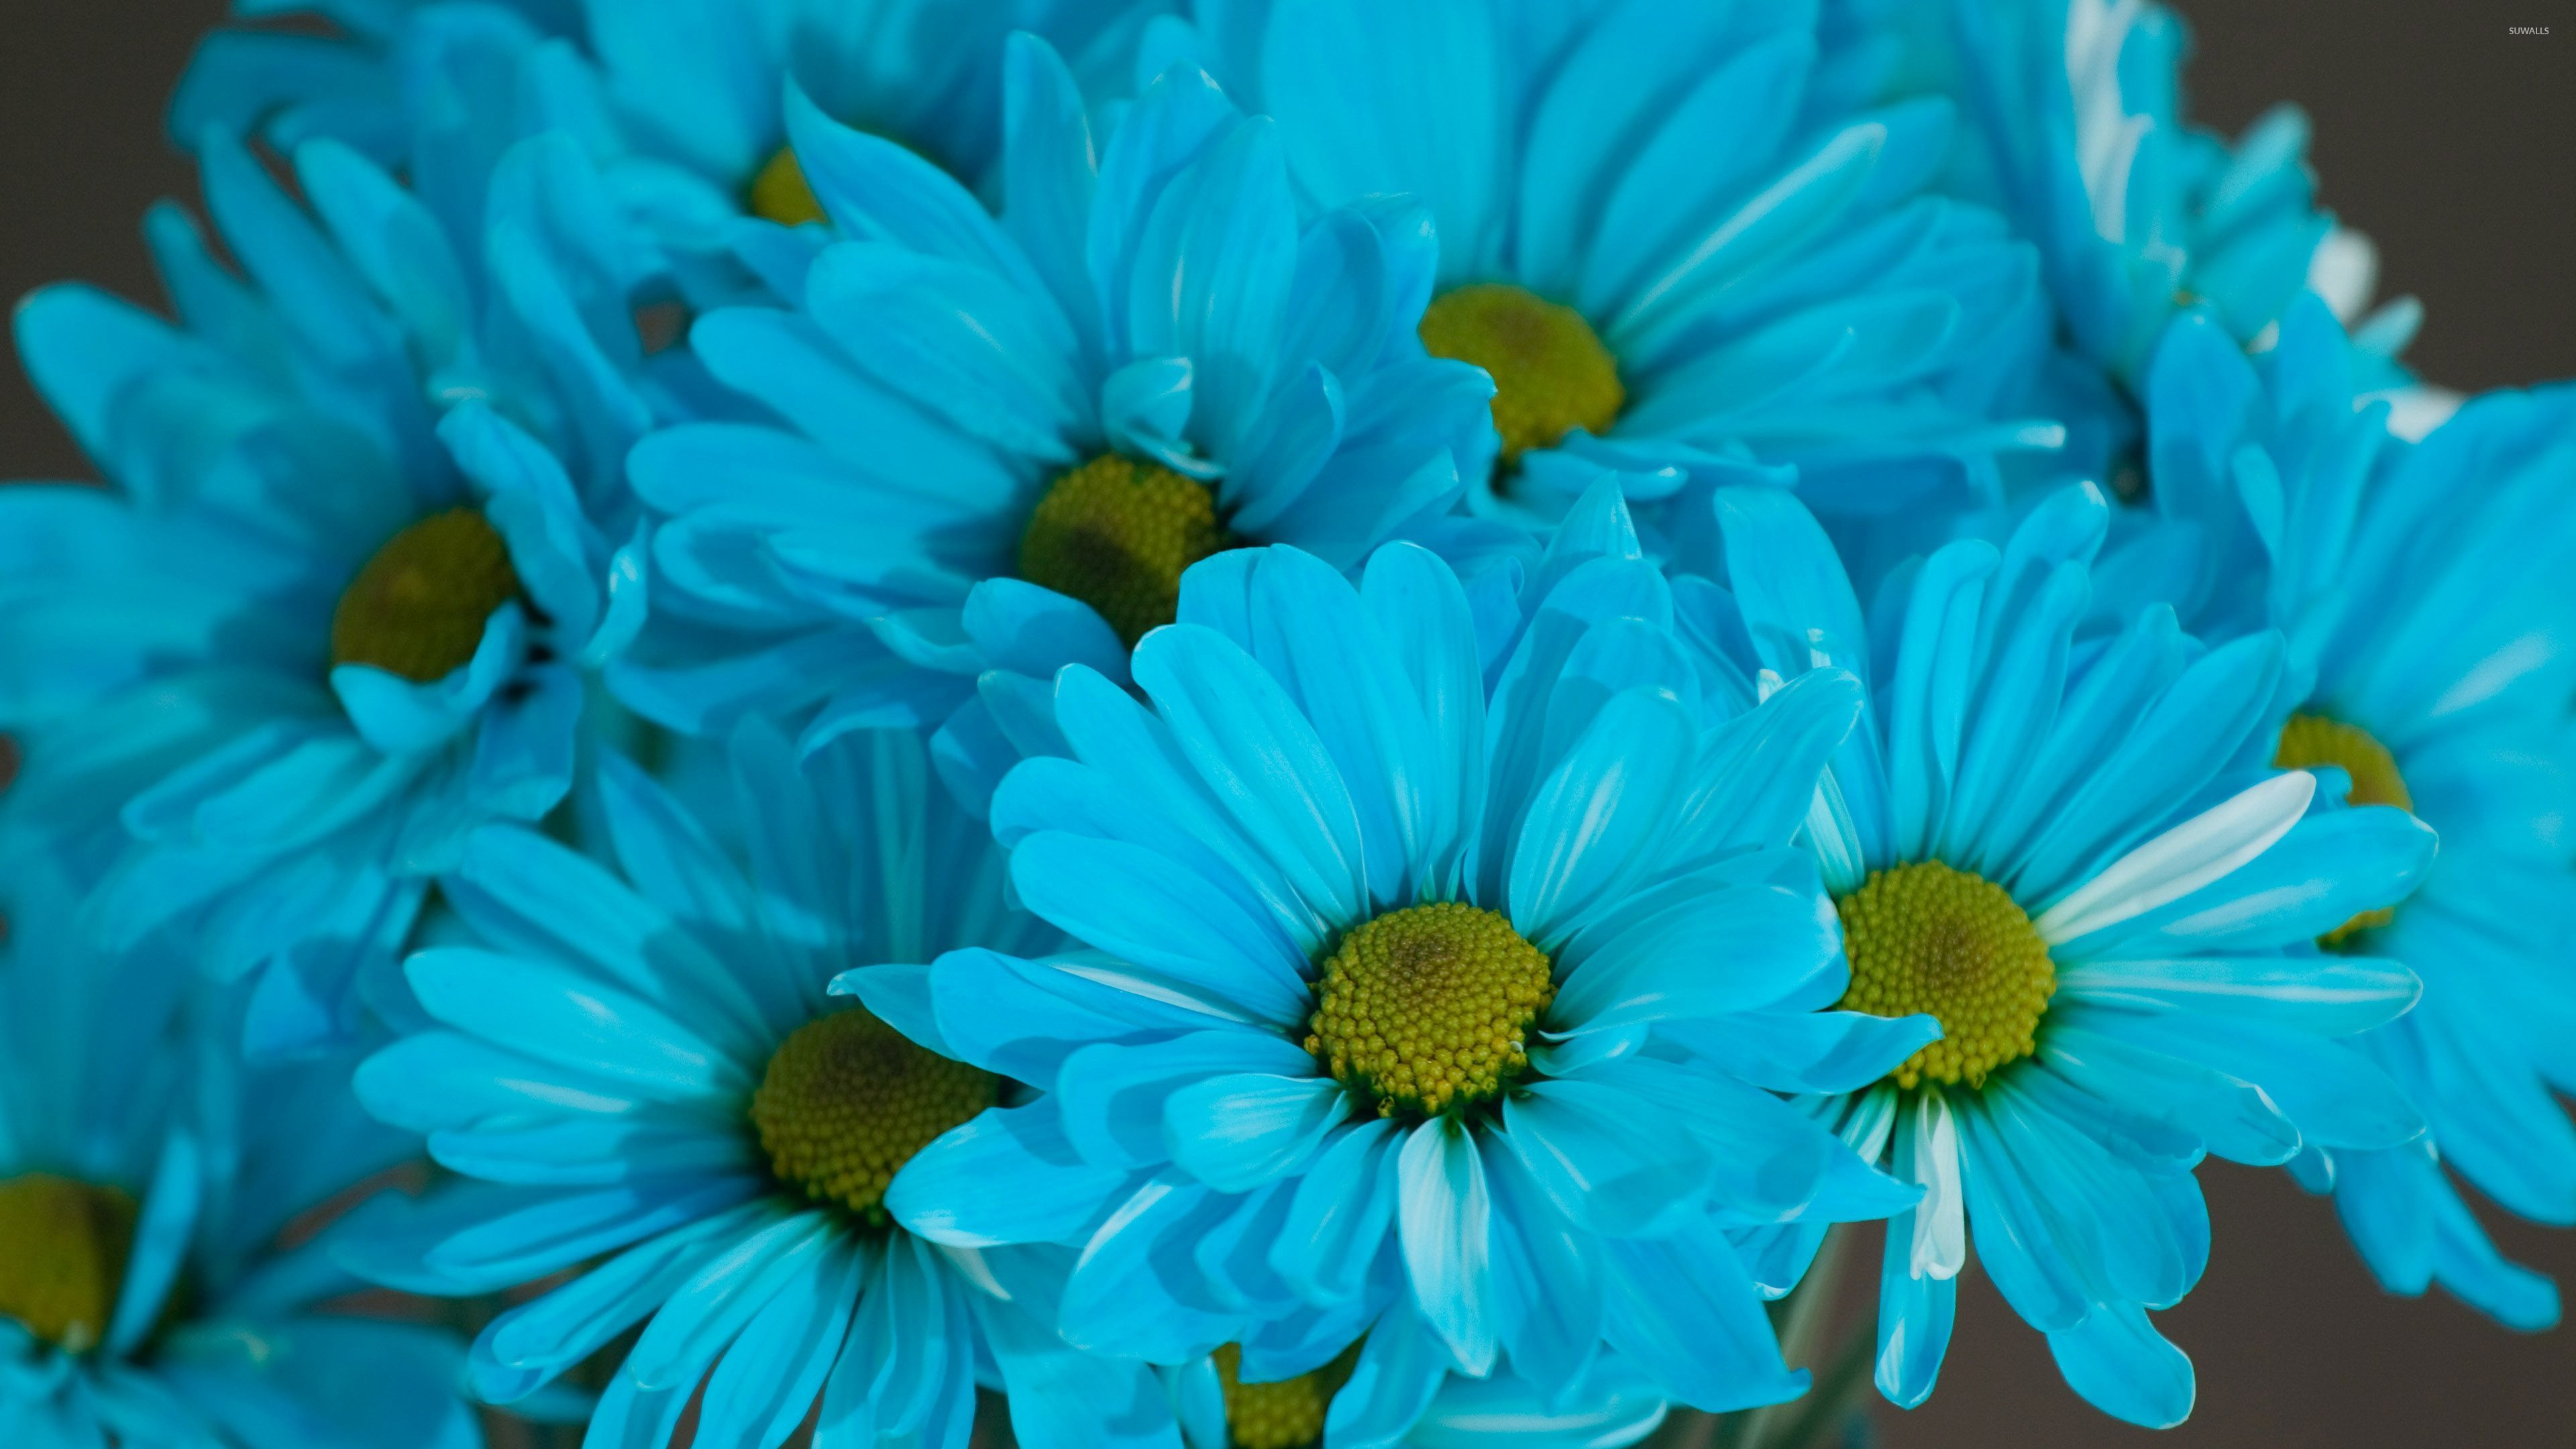 Blue Daisies wallpaper - Flower wallpapers - #32166